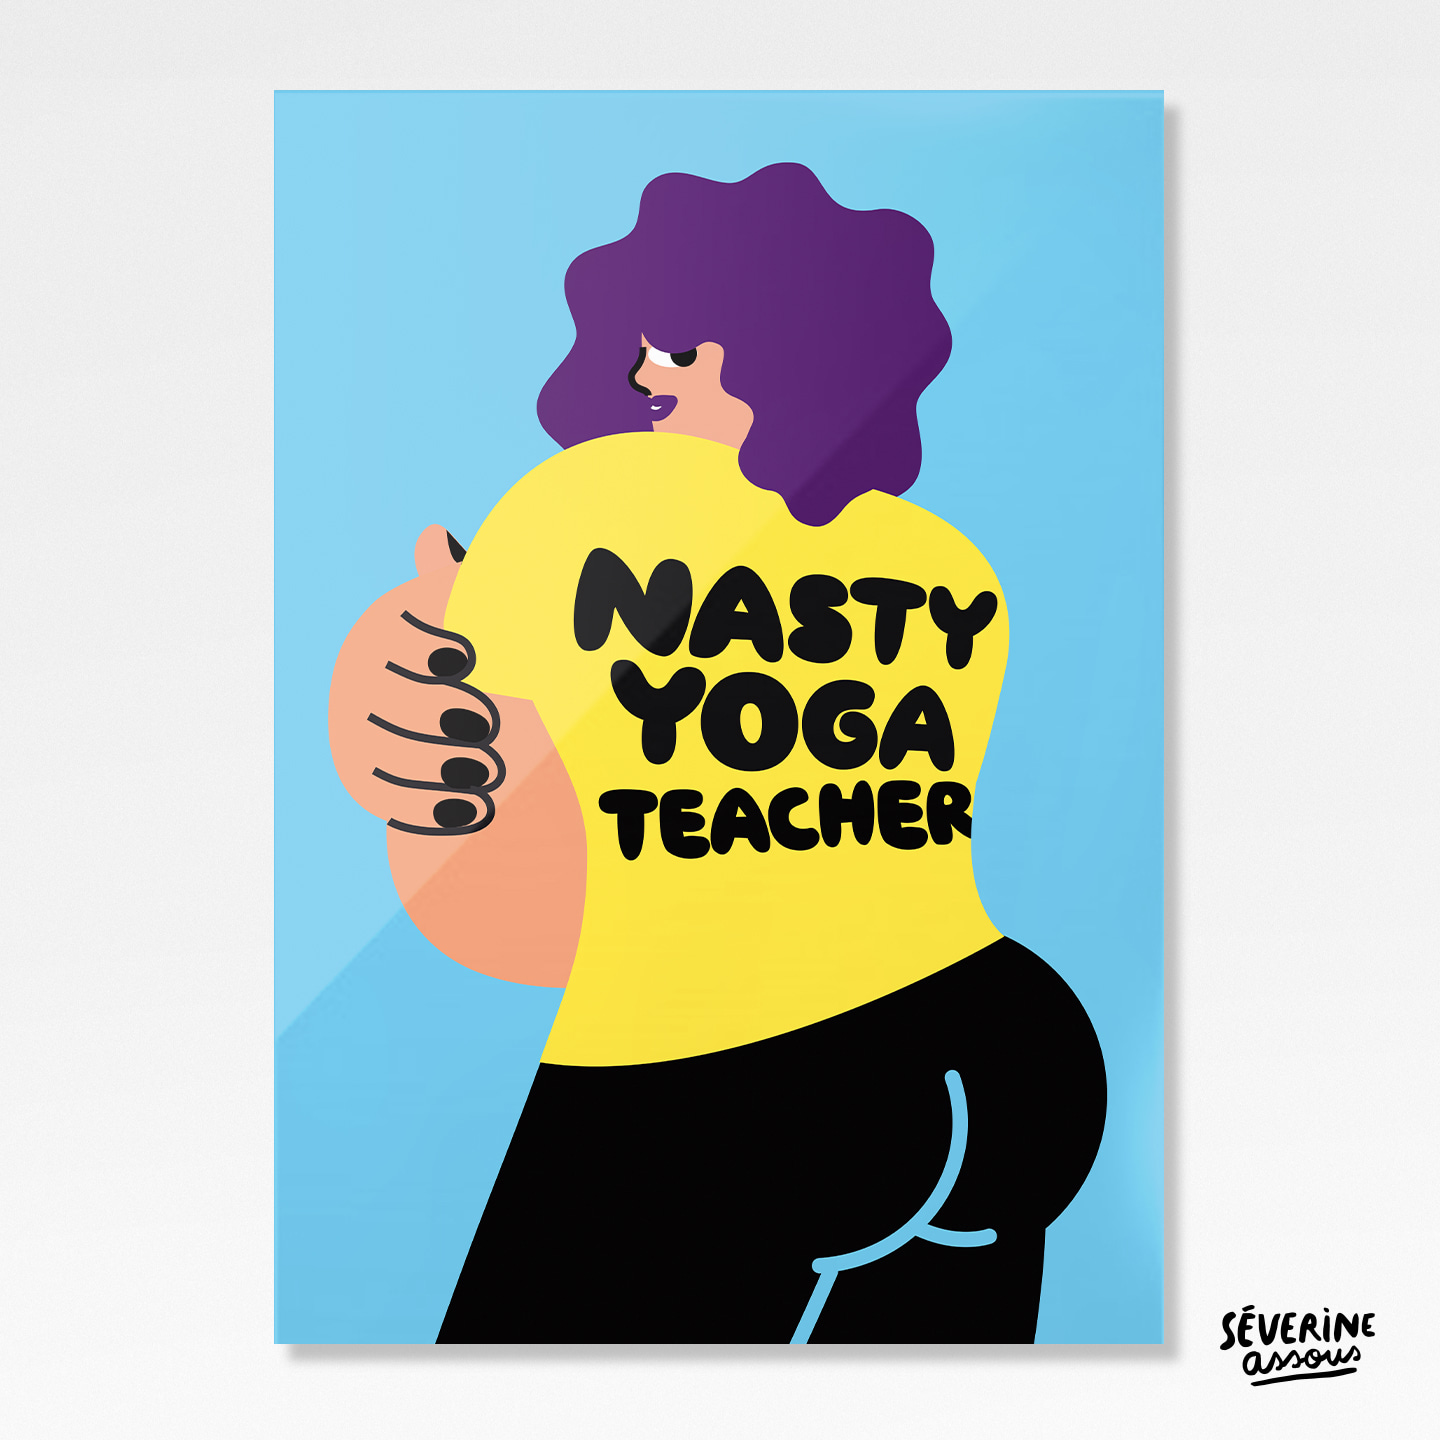 Nasty Yoga Teacher